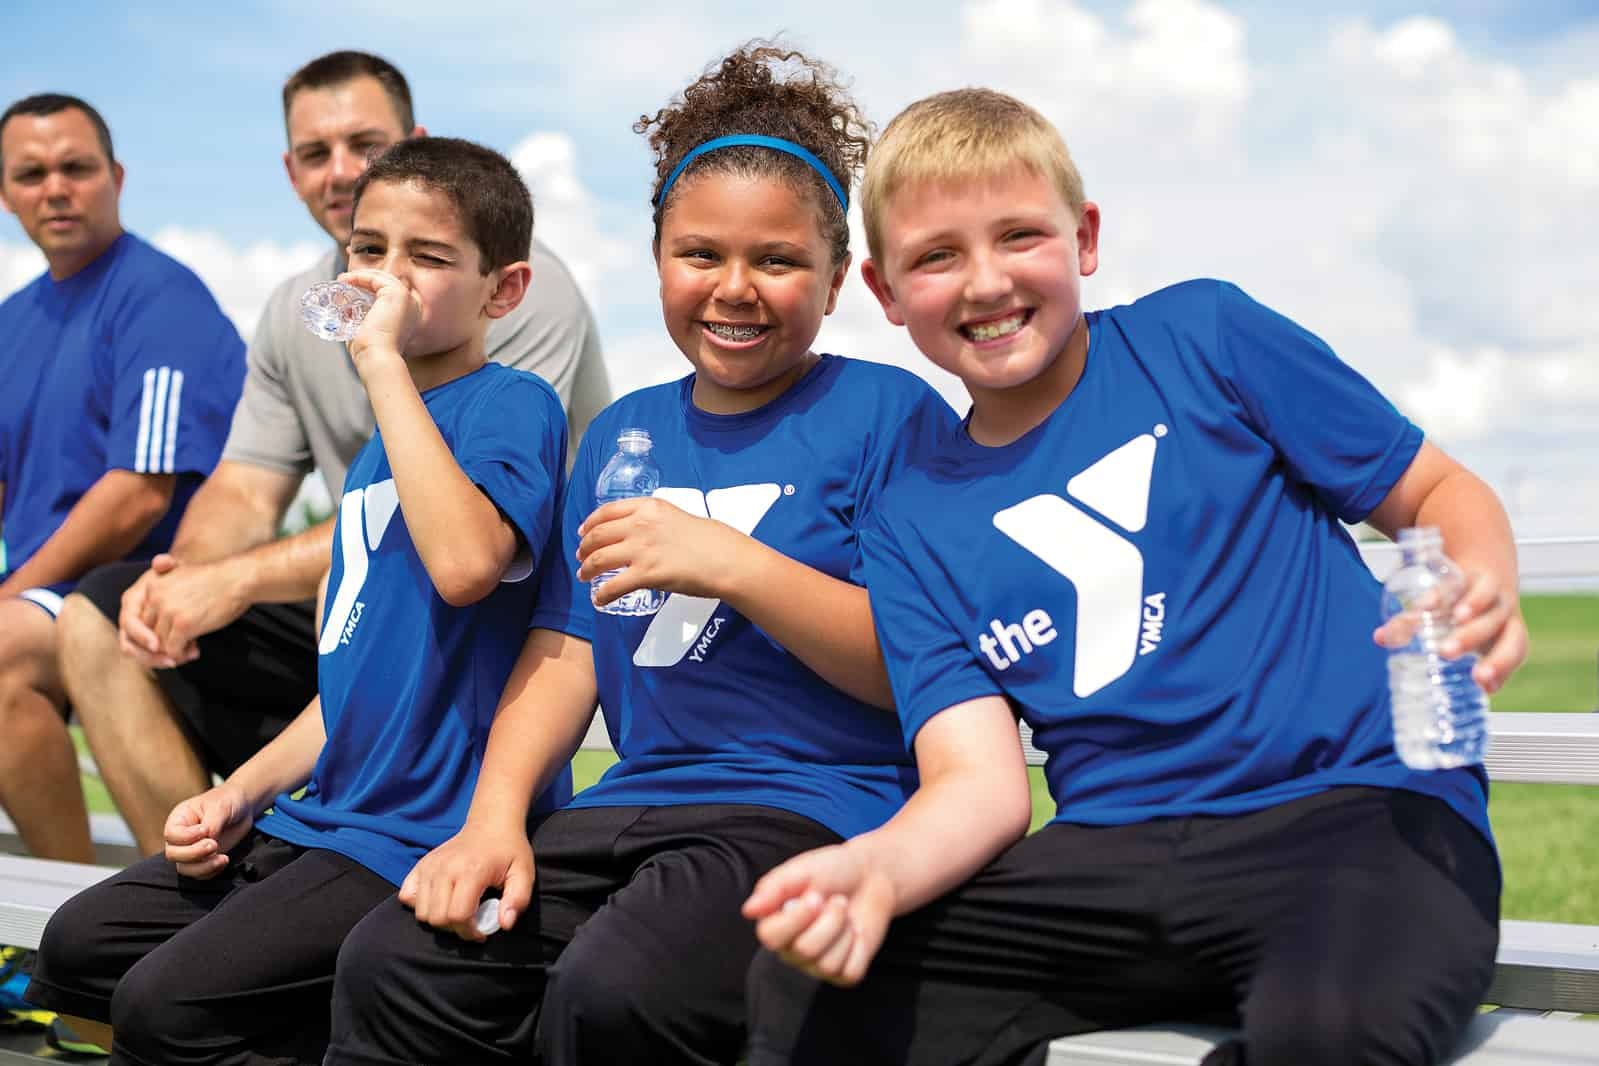 kids enjoying youth soccer